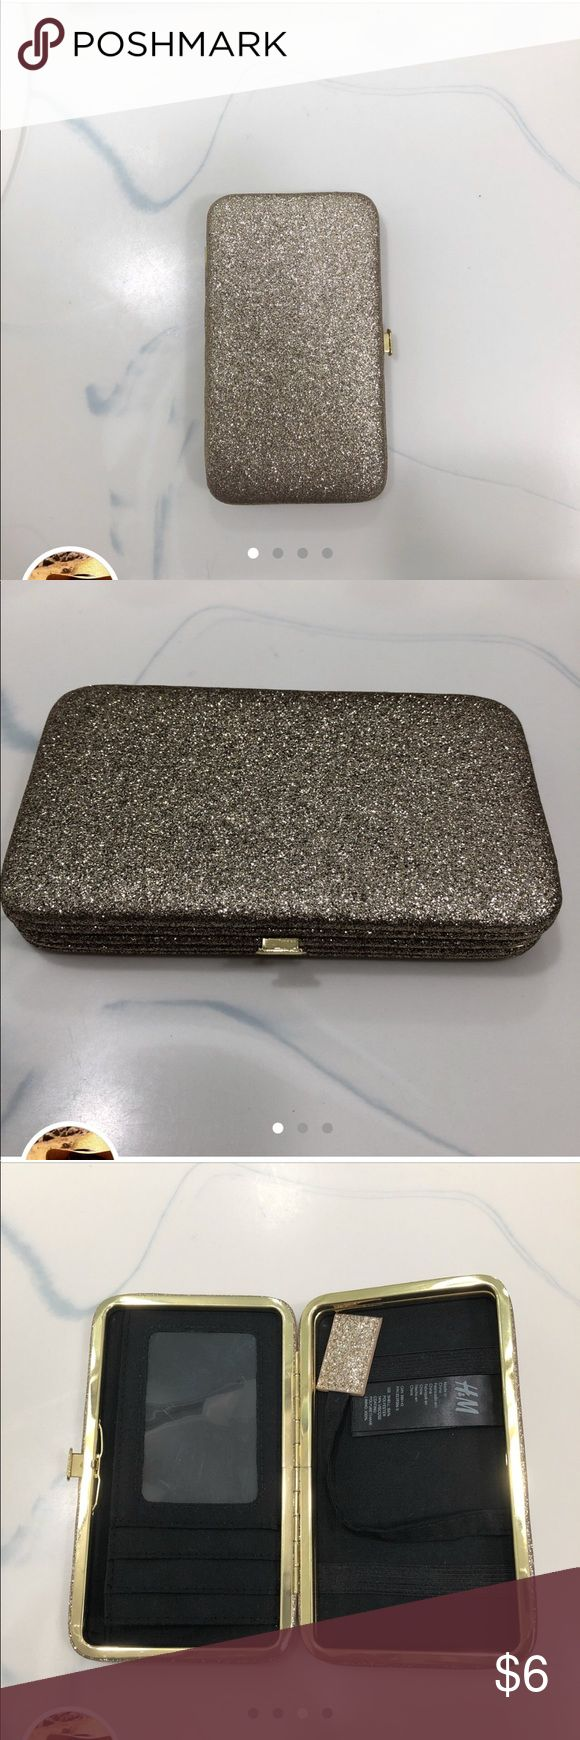 iPhone 6 H&M glitter wallet clutch sparkly gold iPhone 6 H & M glitter wallet clutch sparkly glitter gold H&M Accessories Phone Cases